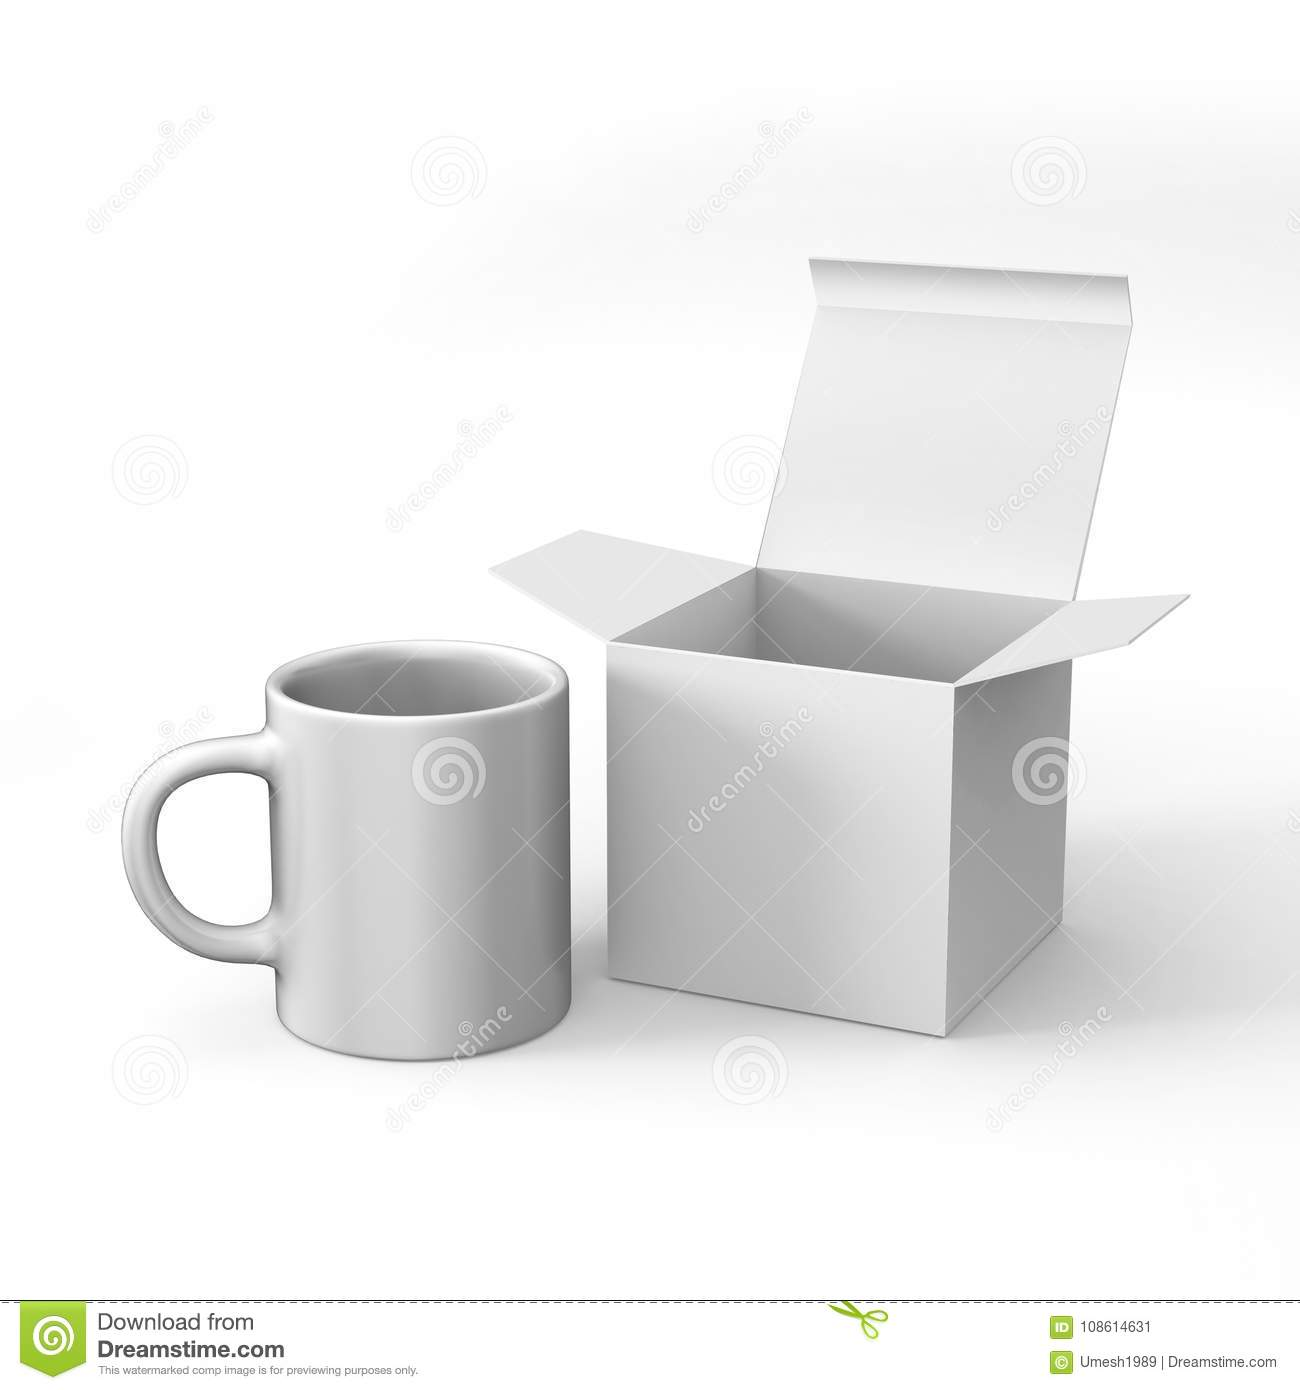 realistic blank ceramic white coffee cup and mug isolated on white